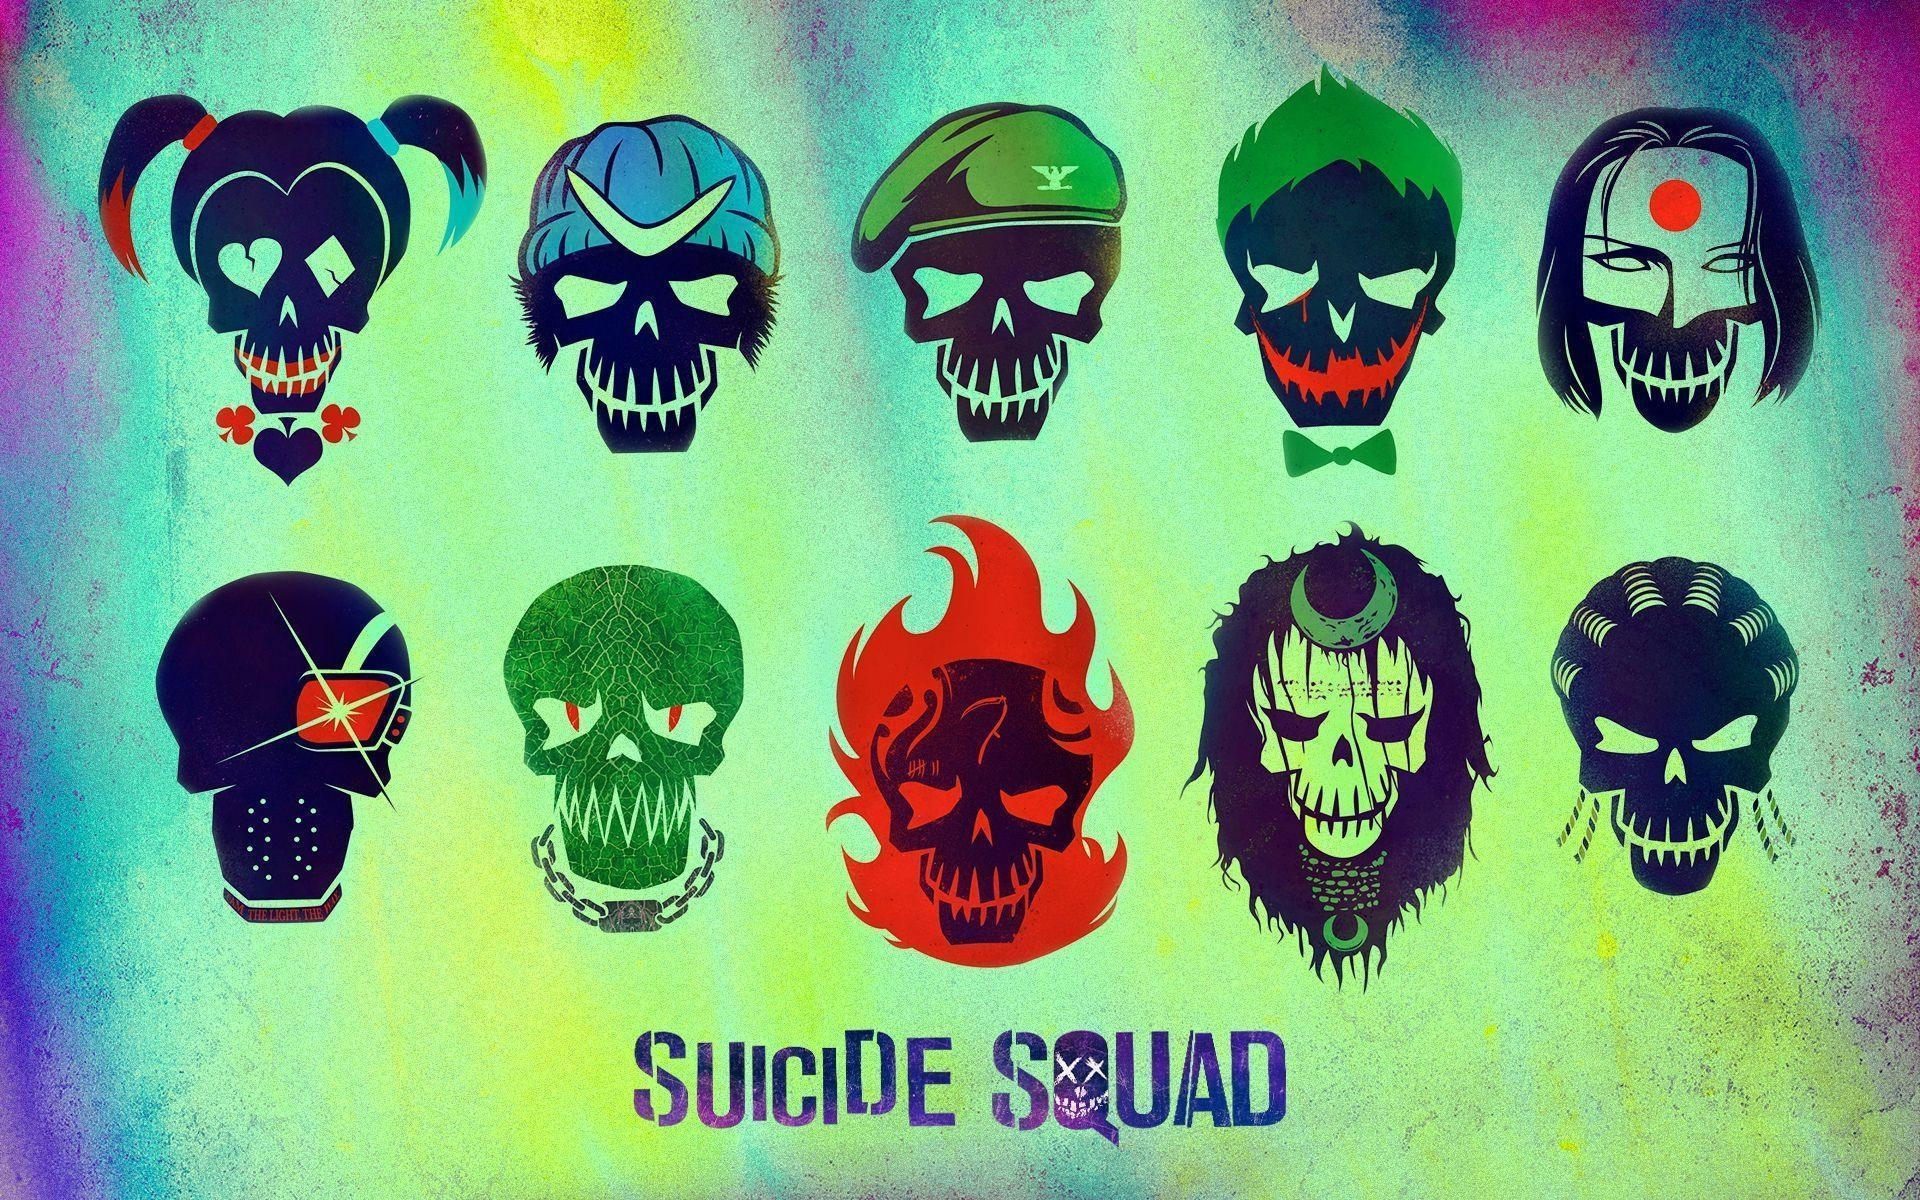 10 Best Suicide Squad Wallpaper Hd FULL HD 1920×1080 For PC Background